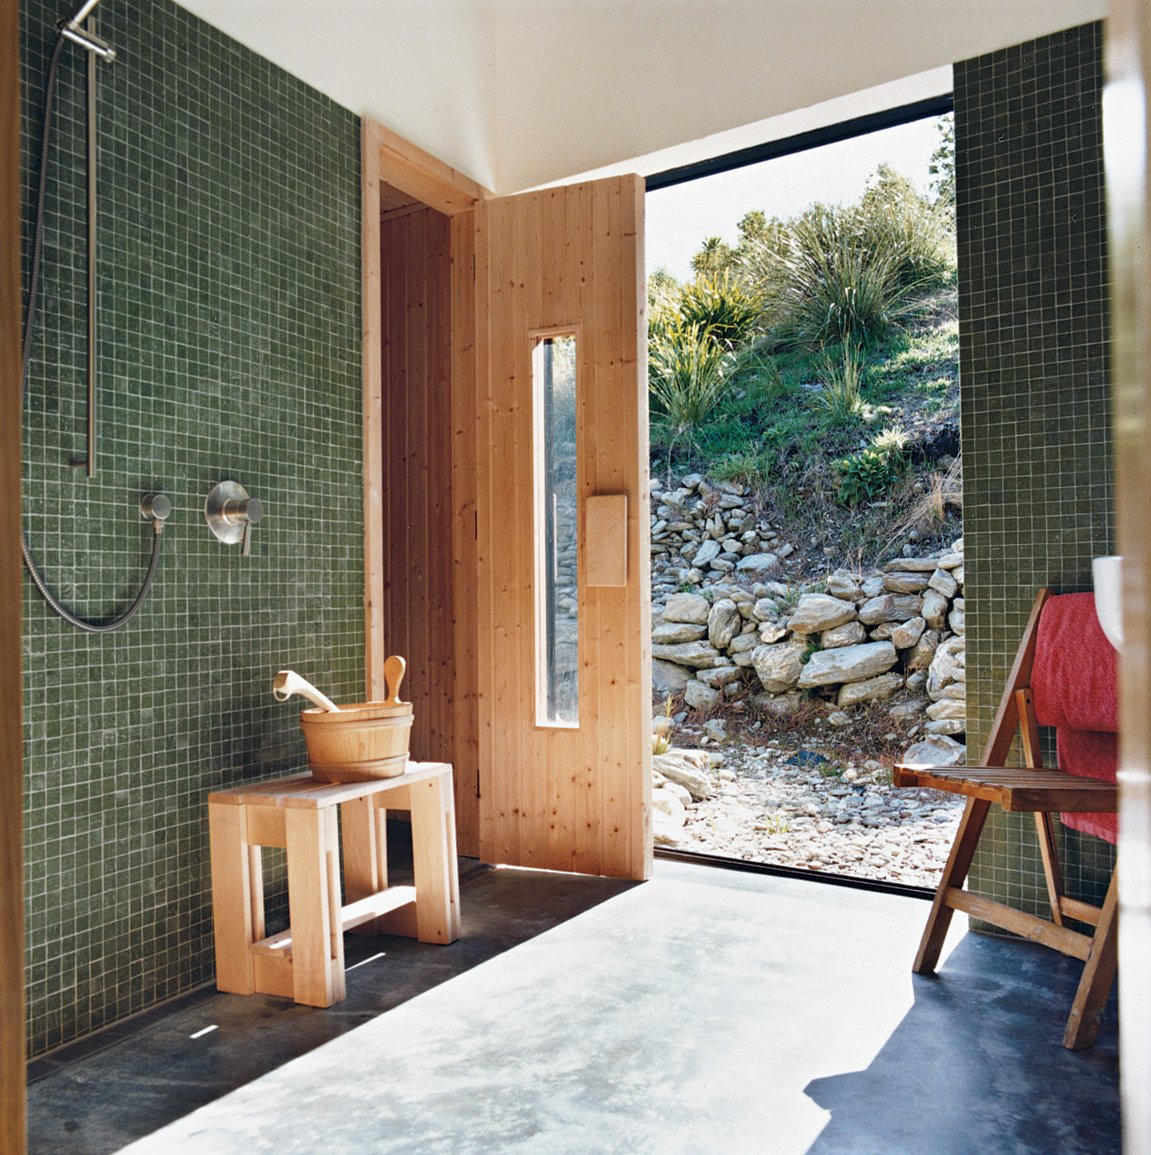 Queenstown gets cold in winter, hence the installation of a sauna. Outside, the landscaping was kept deliberately casual, with rock walls and gravel paths. Tagged: Bath Room and Concrete Floor.  Drift Bay House by Dwell